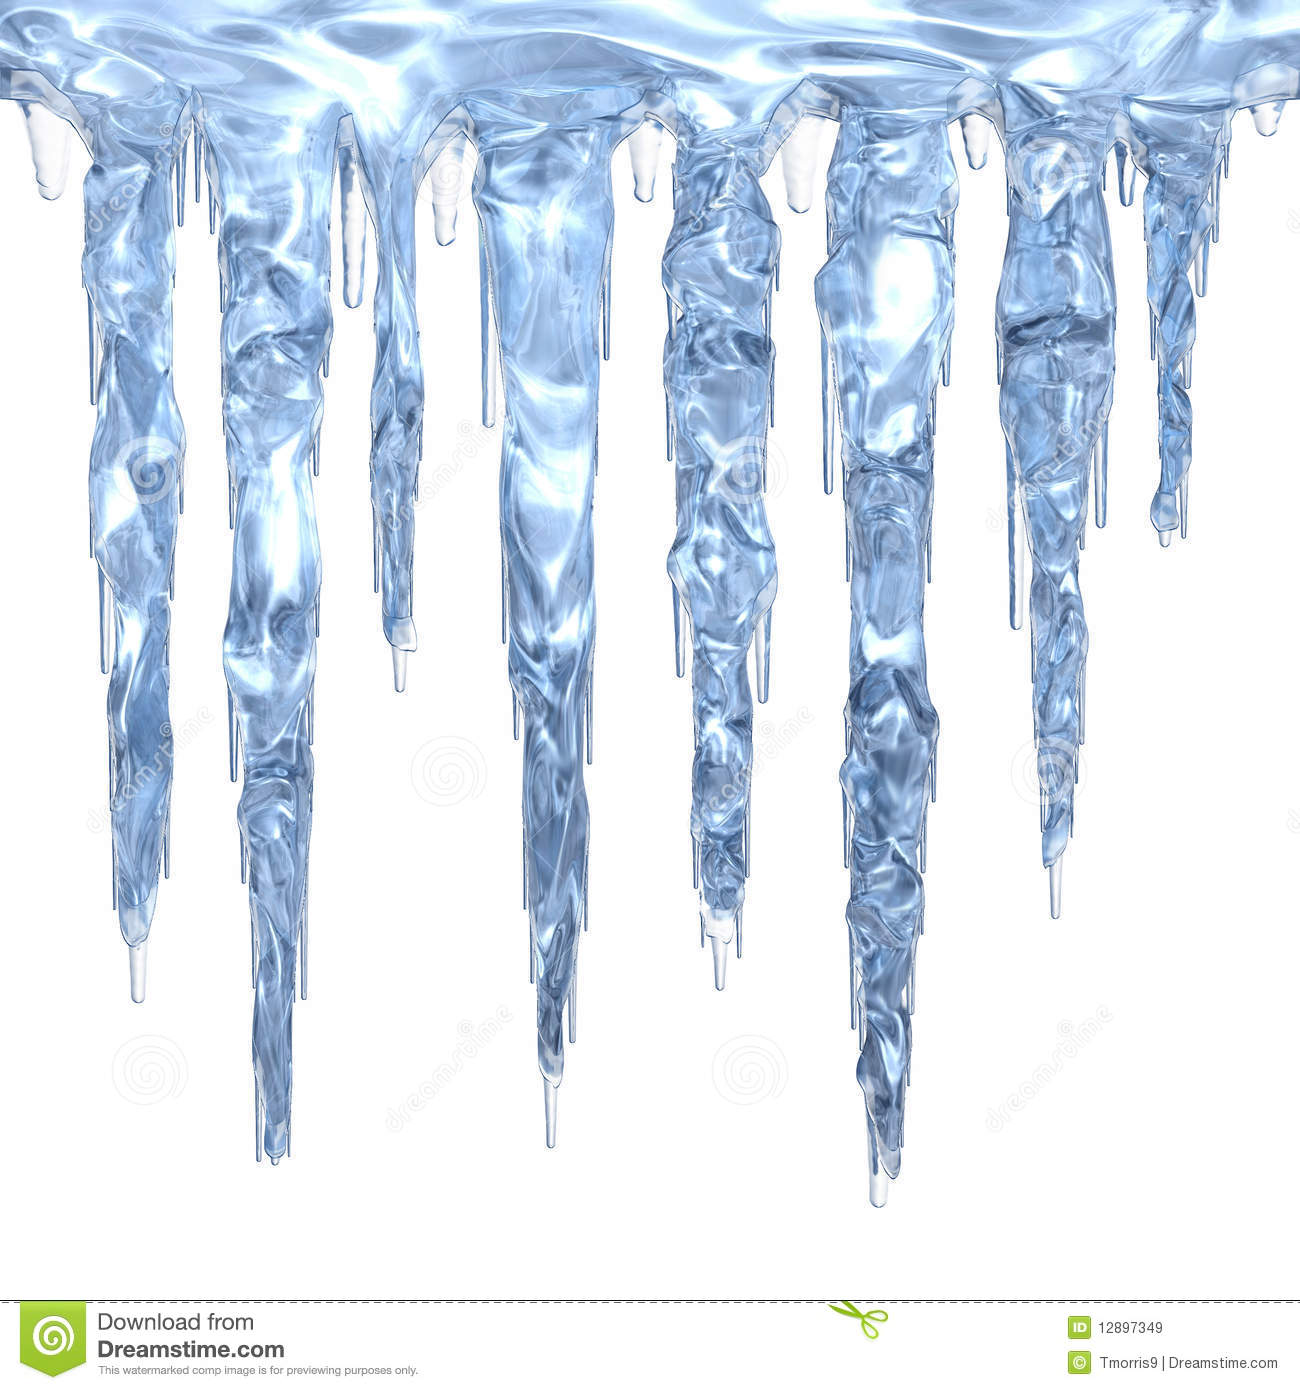 Icicle clipart #17, Download drawings